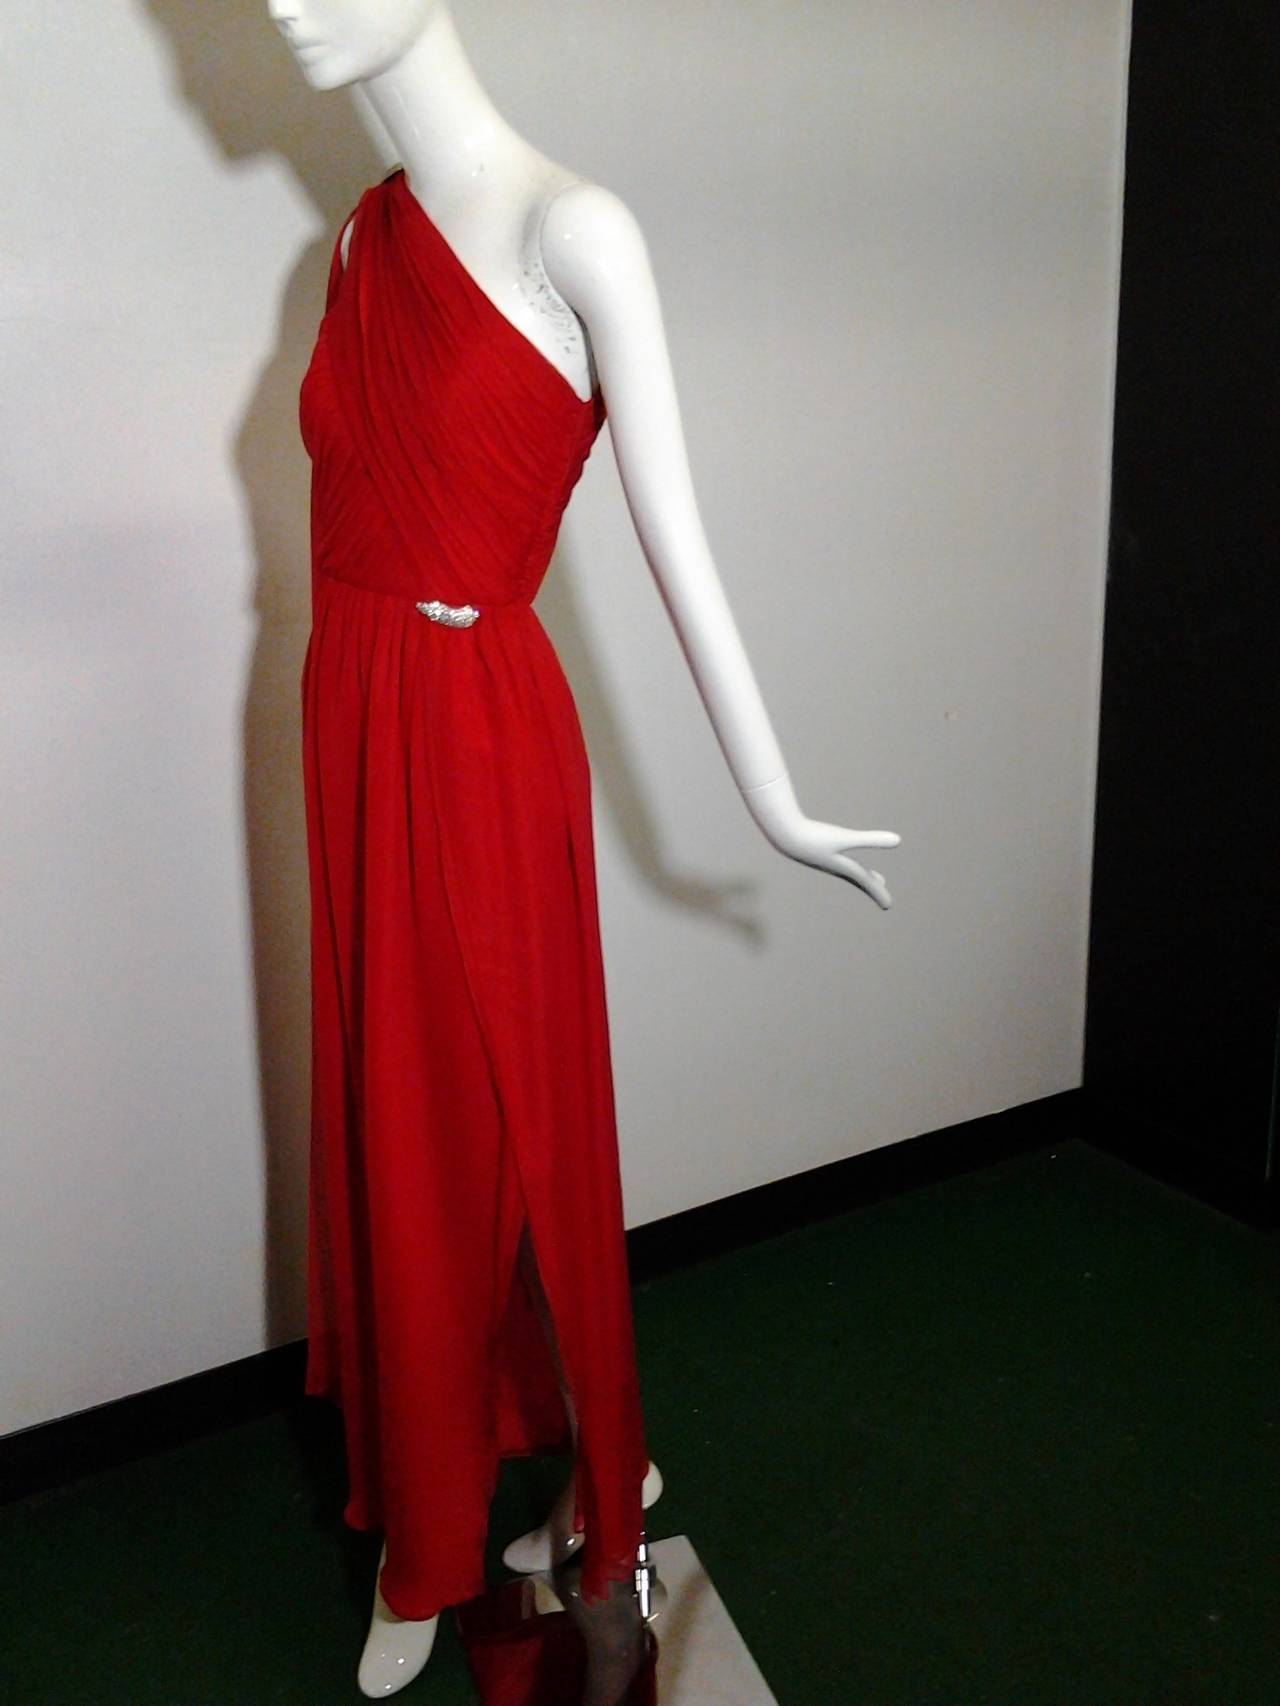 1980s Carolyne Roehm Vivid Red Silk Chiffon One-Shoulder Goddess Gown 9